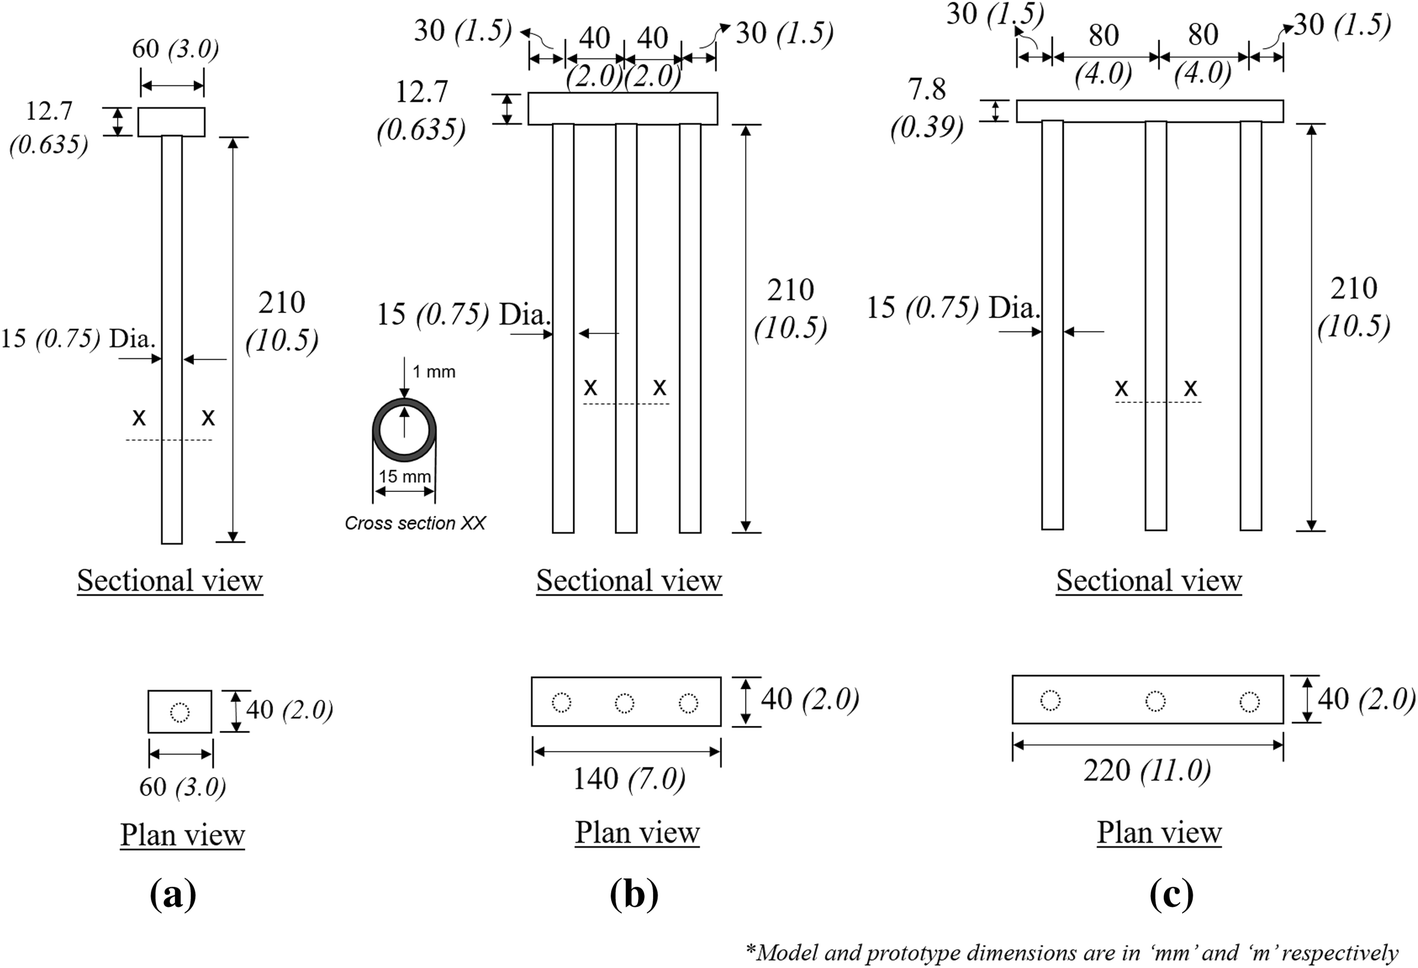 Seismic behaviour of soft clay and its influence on the response of